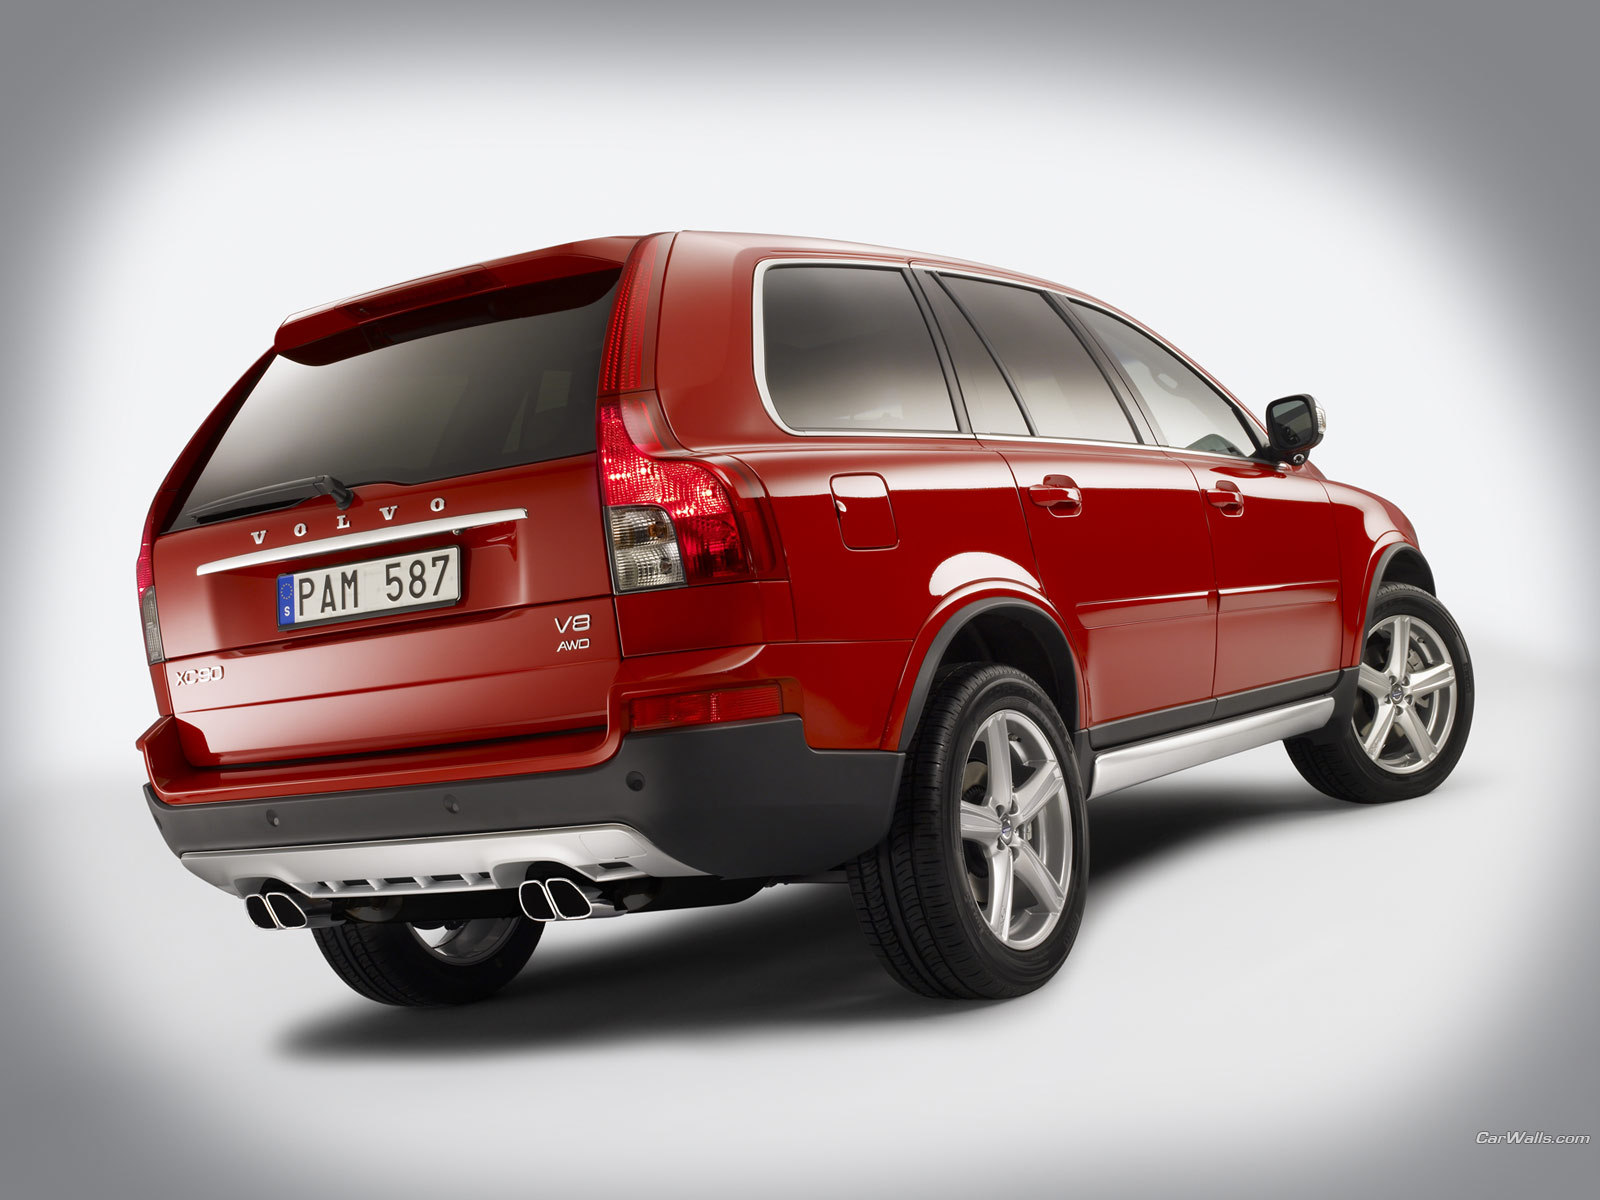 volvo images xc90 r design hd wallpaper and background xc90 v8 sport back